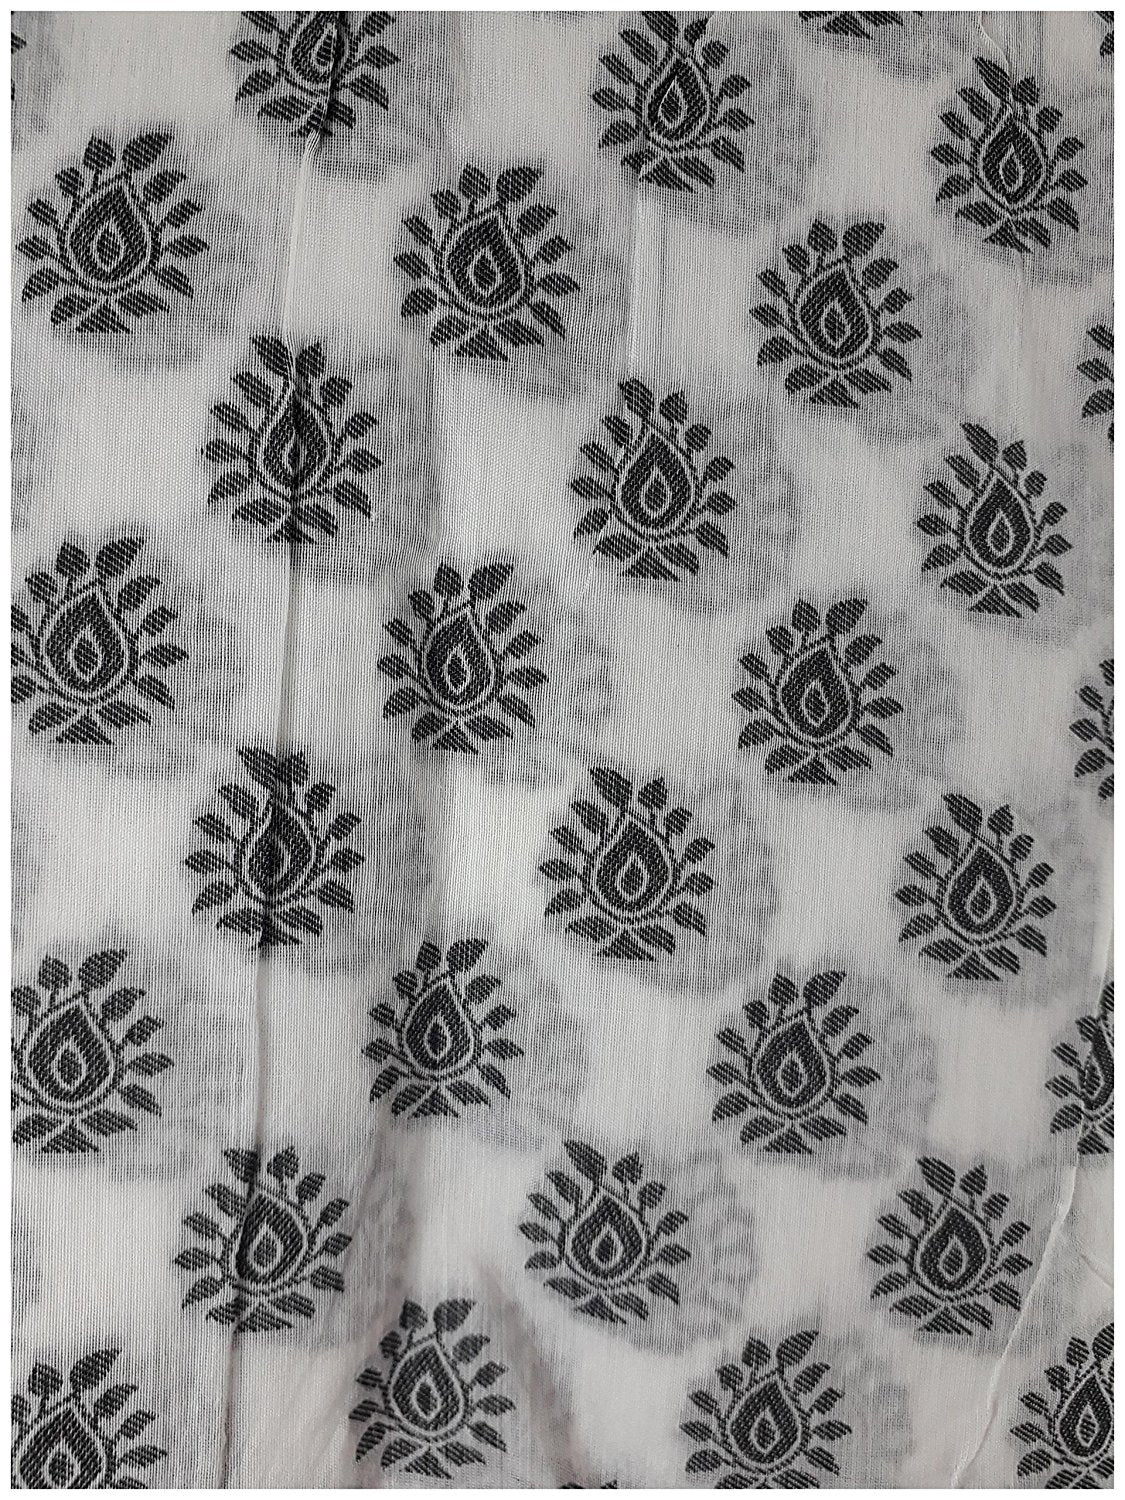 cloth material online fabric material online Embroidered, Jaquard Cotton Off White, Black 47 inches Wide 1784